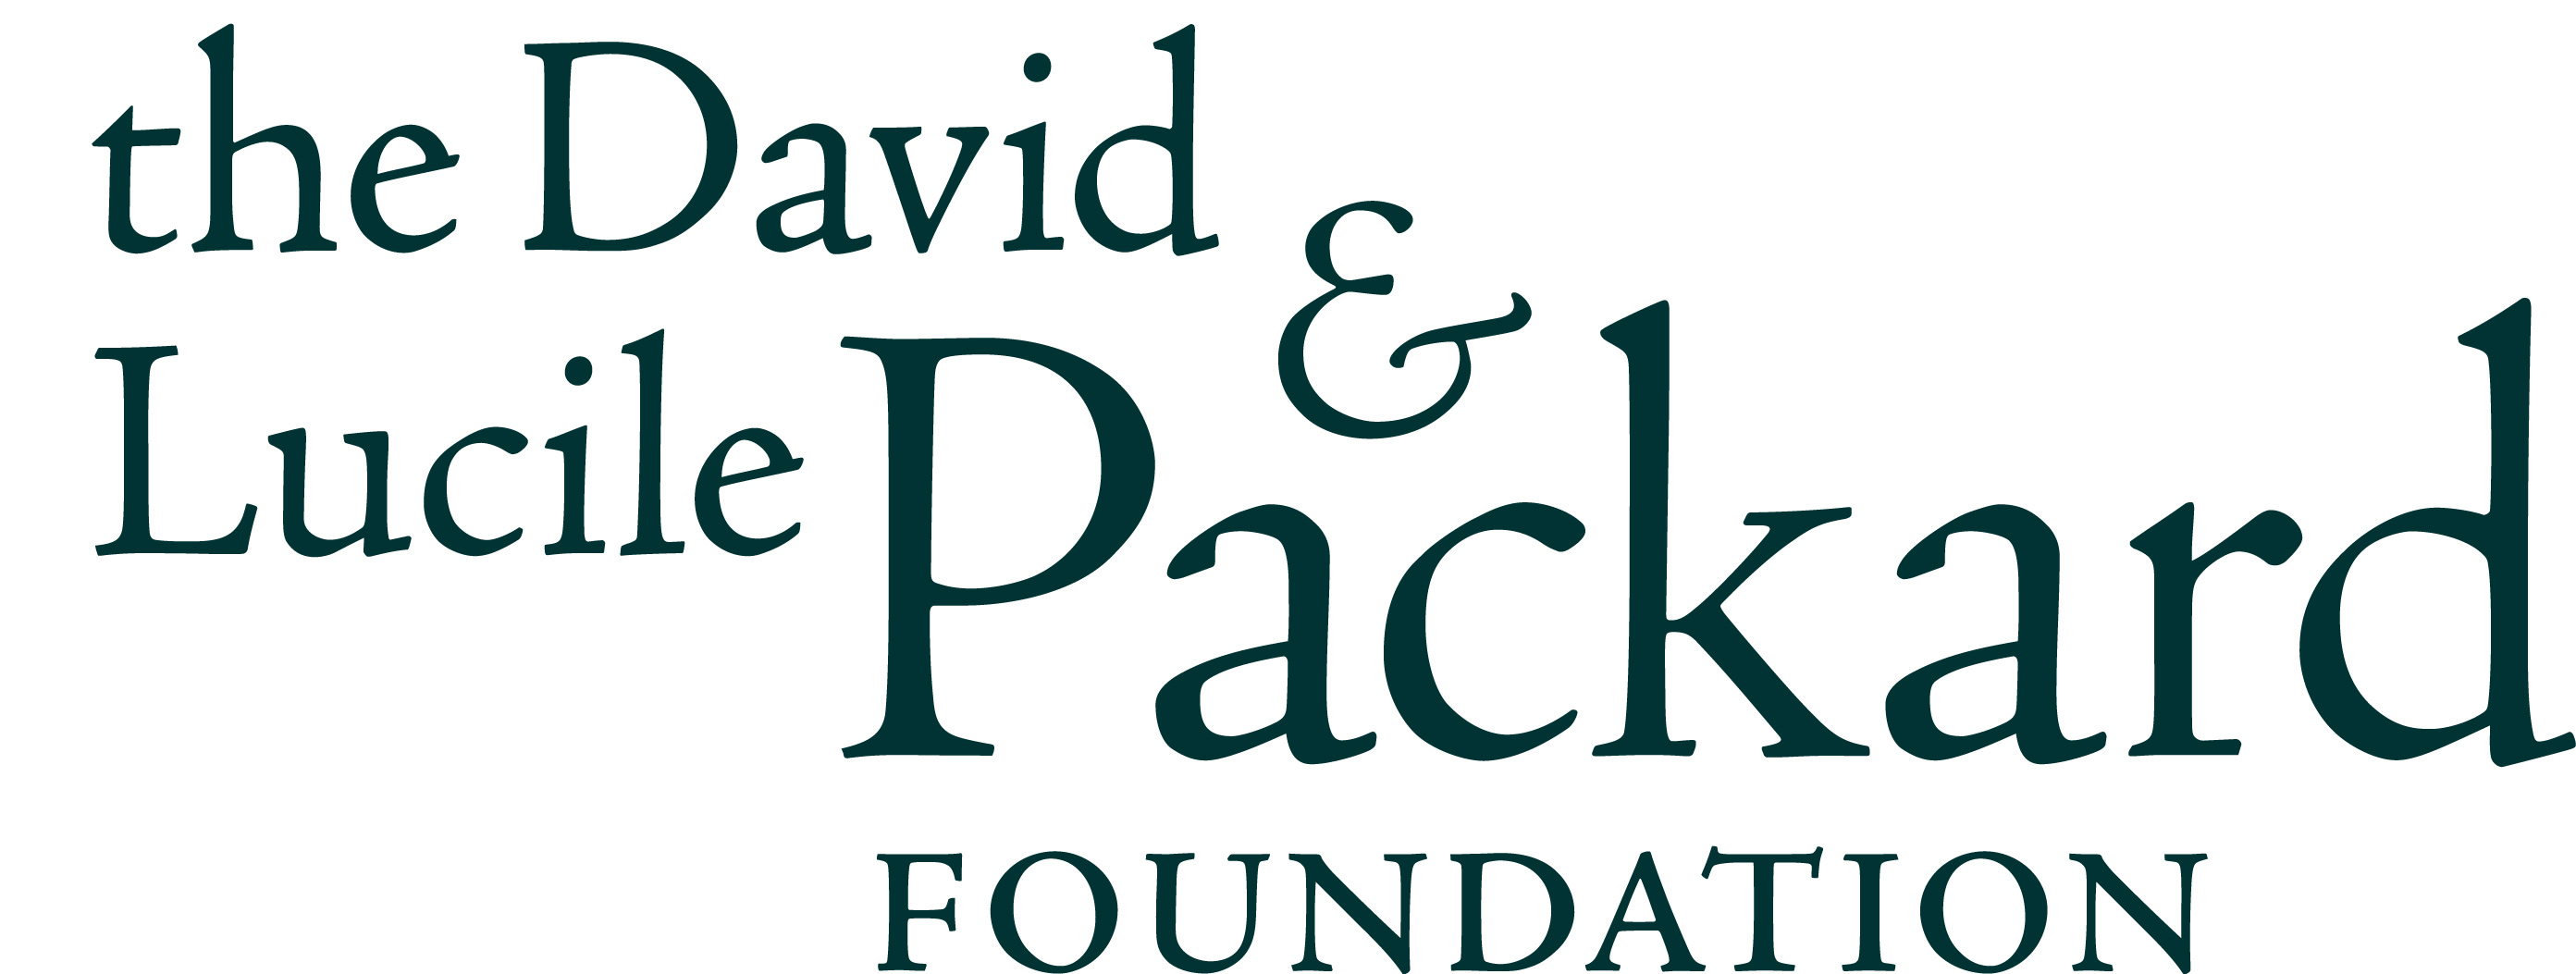 The David and Lucille Packard Foundation Logo